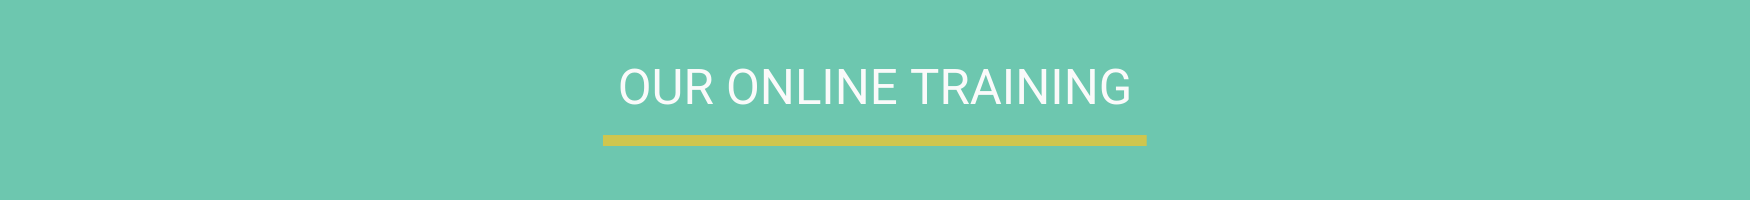 Our online training